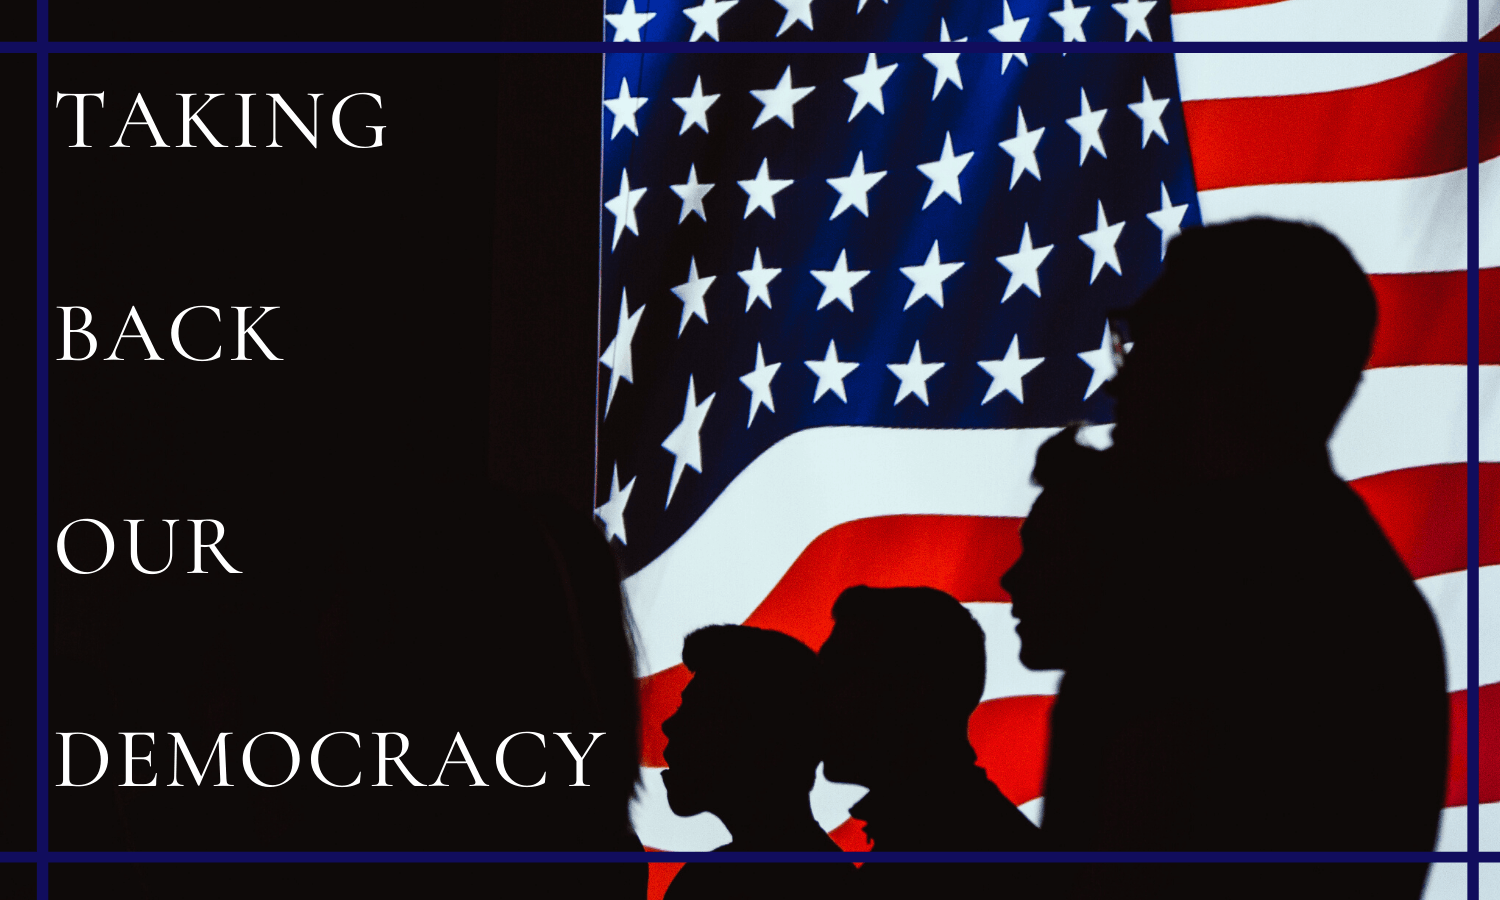 Taking Back Our Democracy